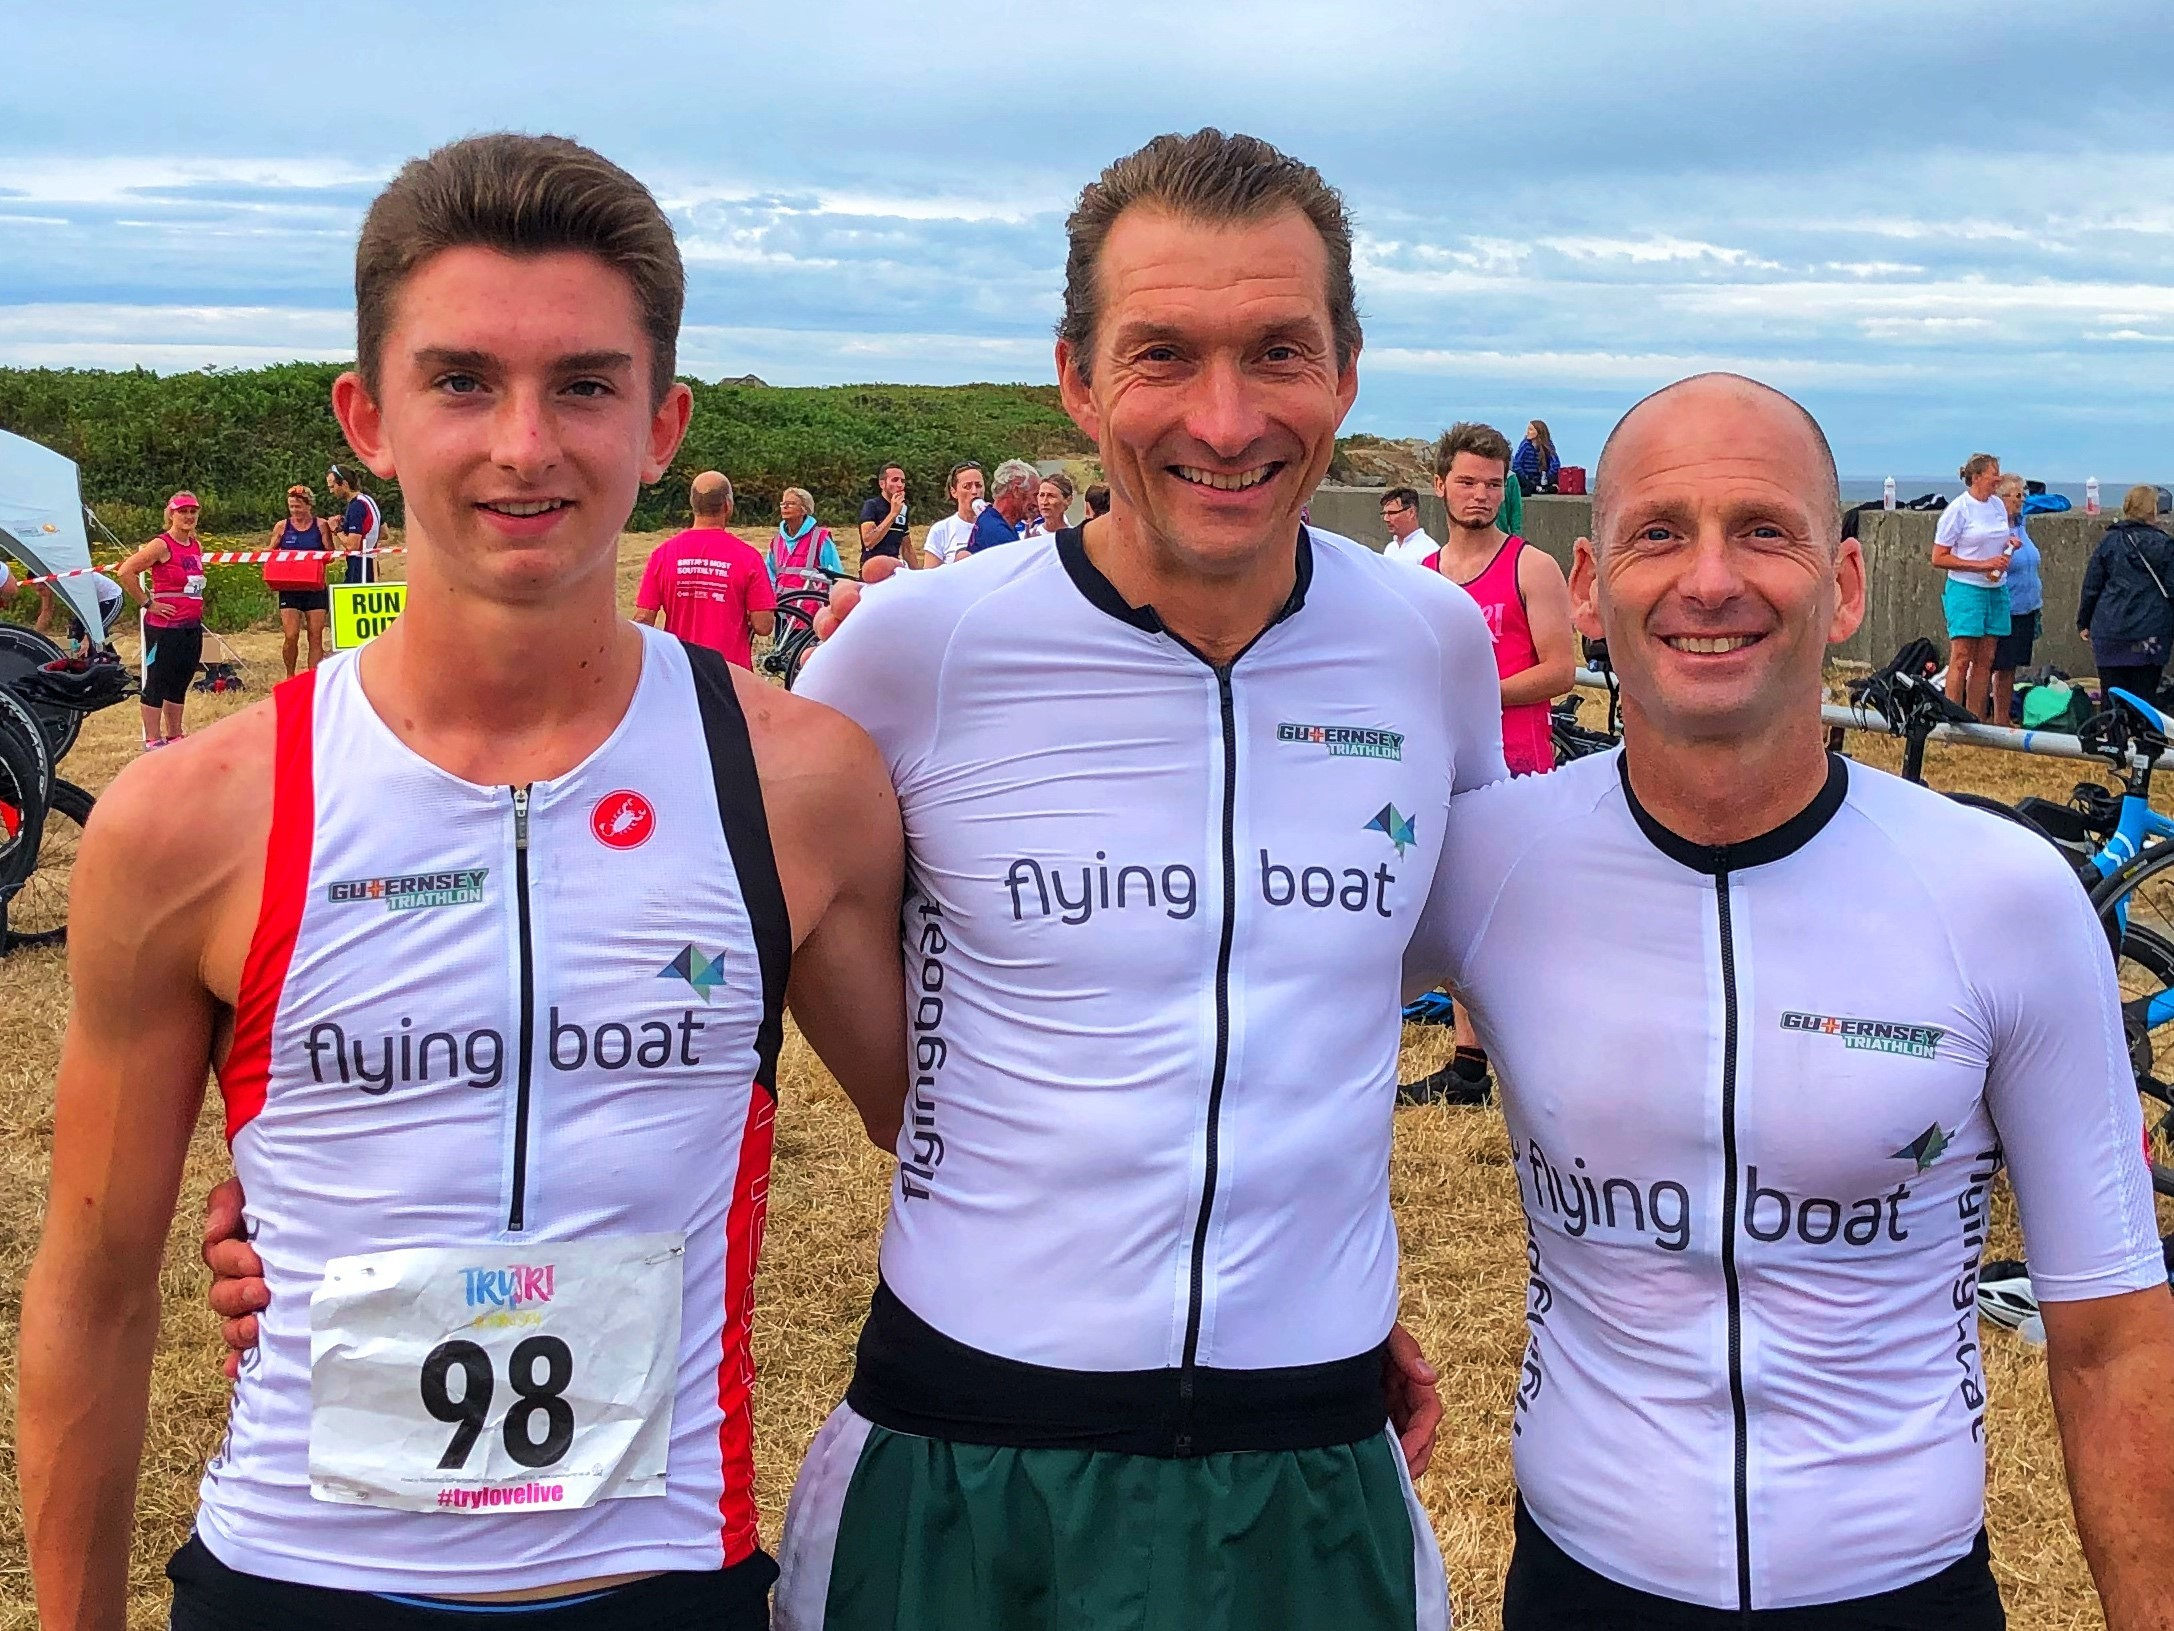 The Flyingboat Team placed 3rd in the Guernsey Triathlon Corporate Team Relay